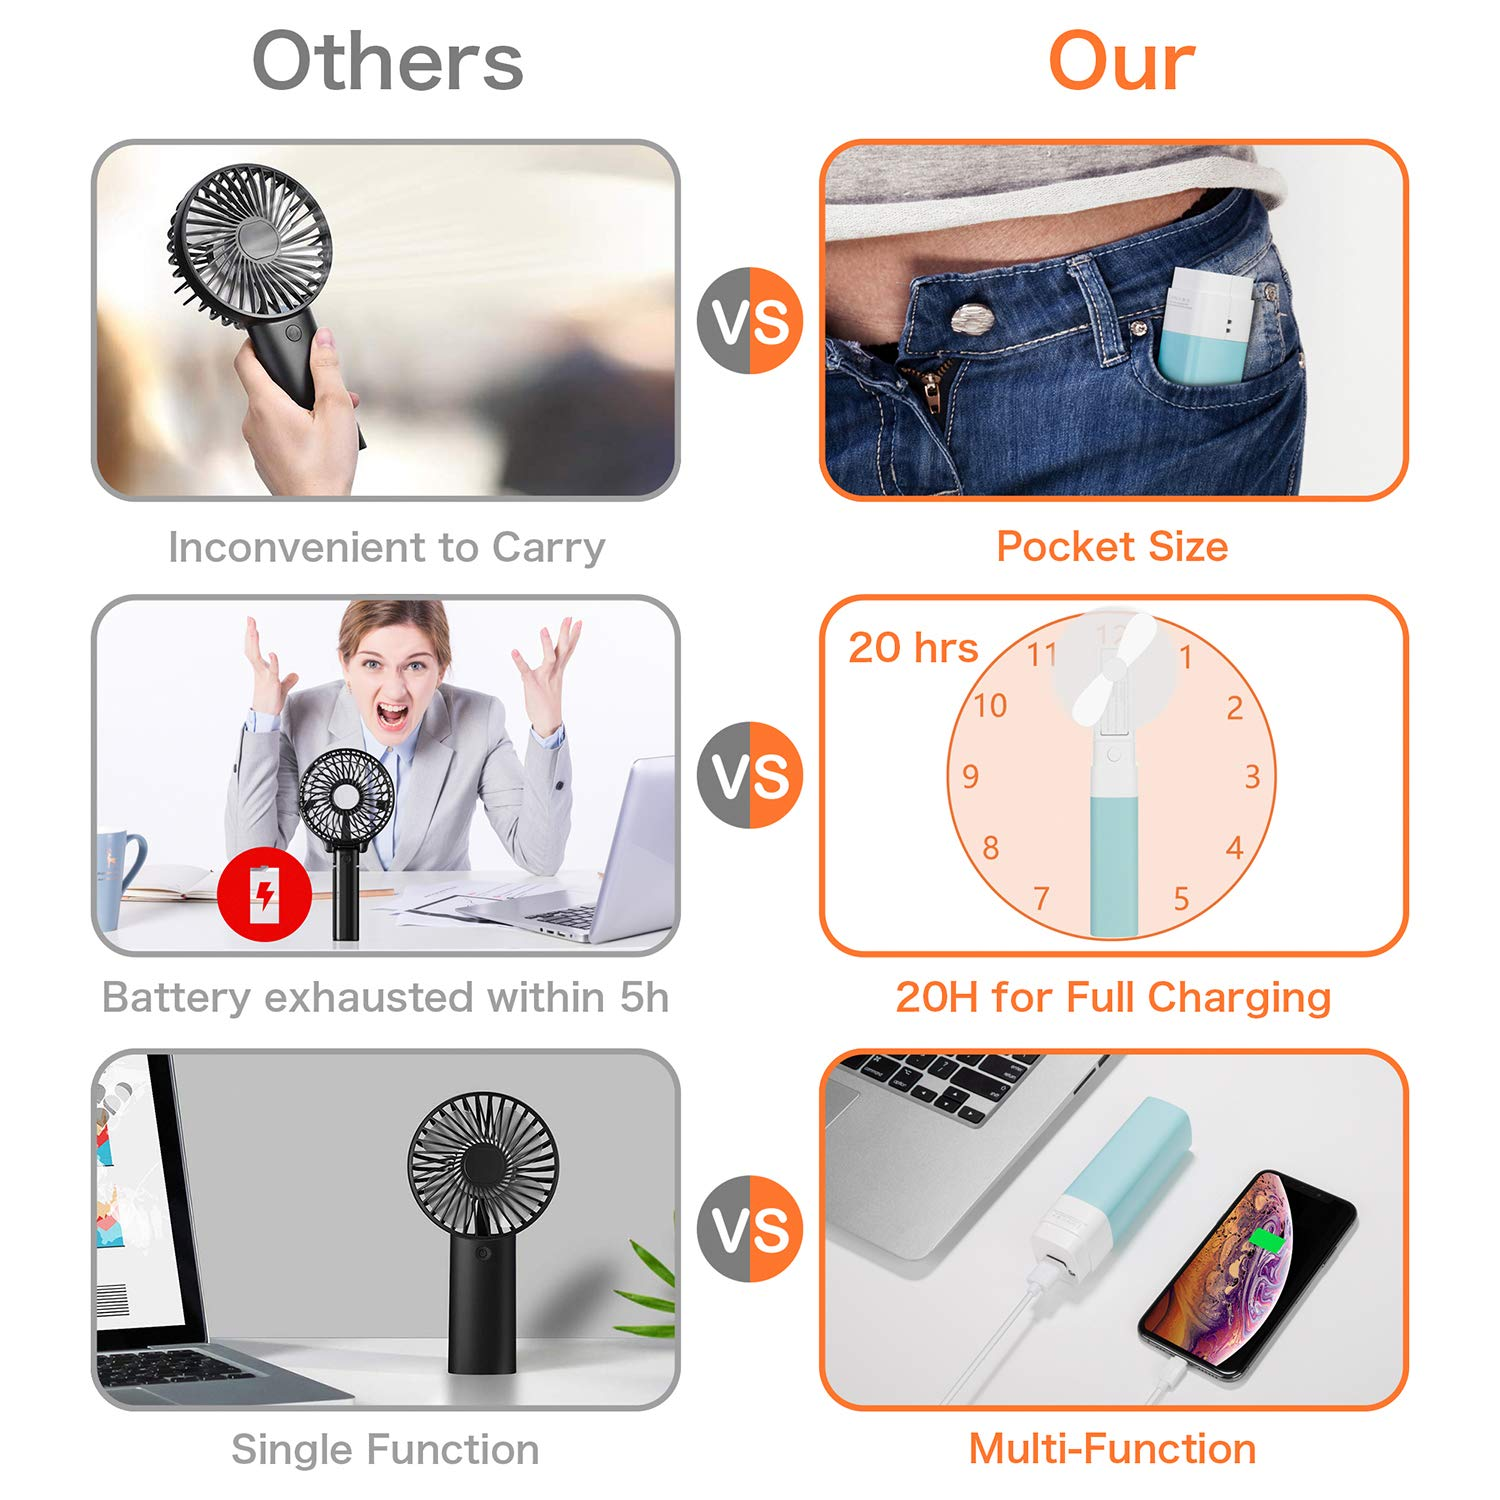 Portable Handheld Fan, 2000mAh Battery or USB Powered Personal Handy Fan with Power Bank and Led Flashlight, 20H Max Working Time, Super Quiet Desk Fan for Home Office Travel Camping Outdoor Blue